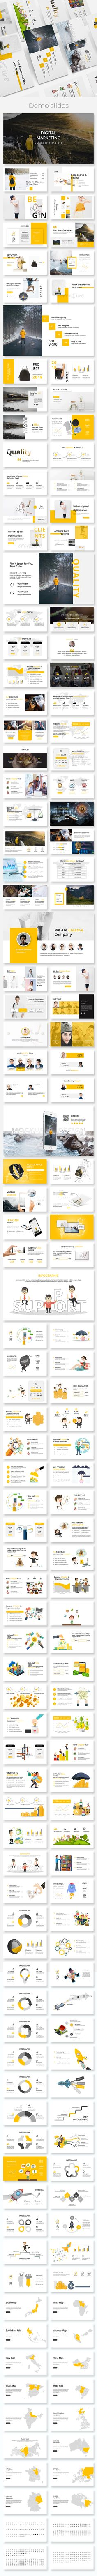 Digital Marketing - Business Powerpoint Template